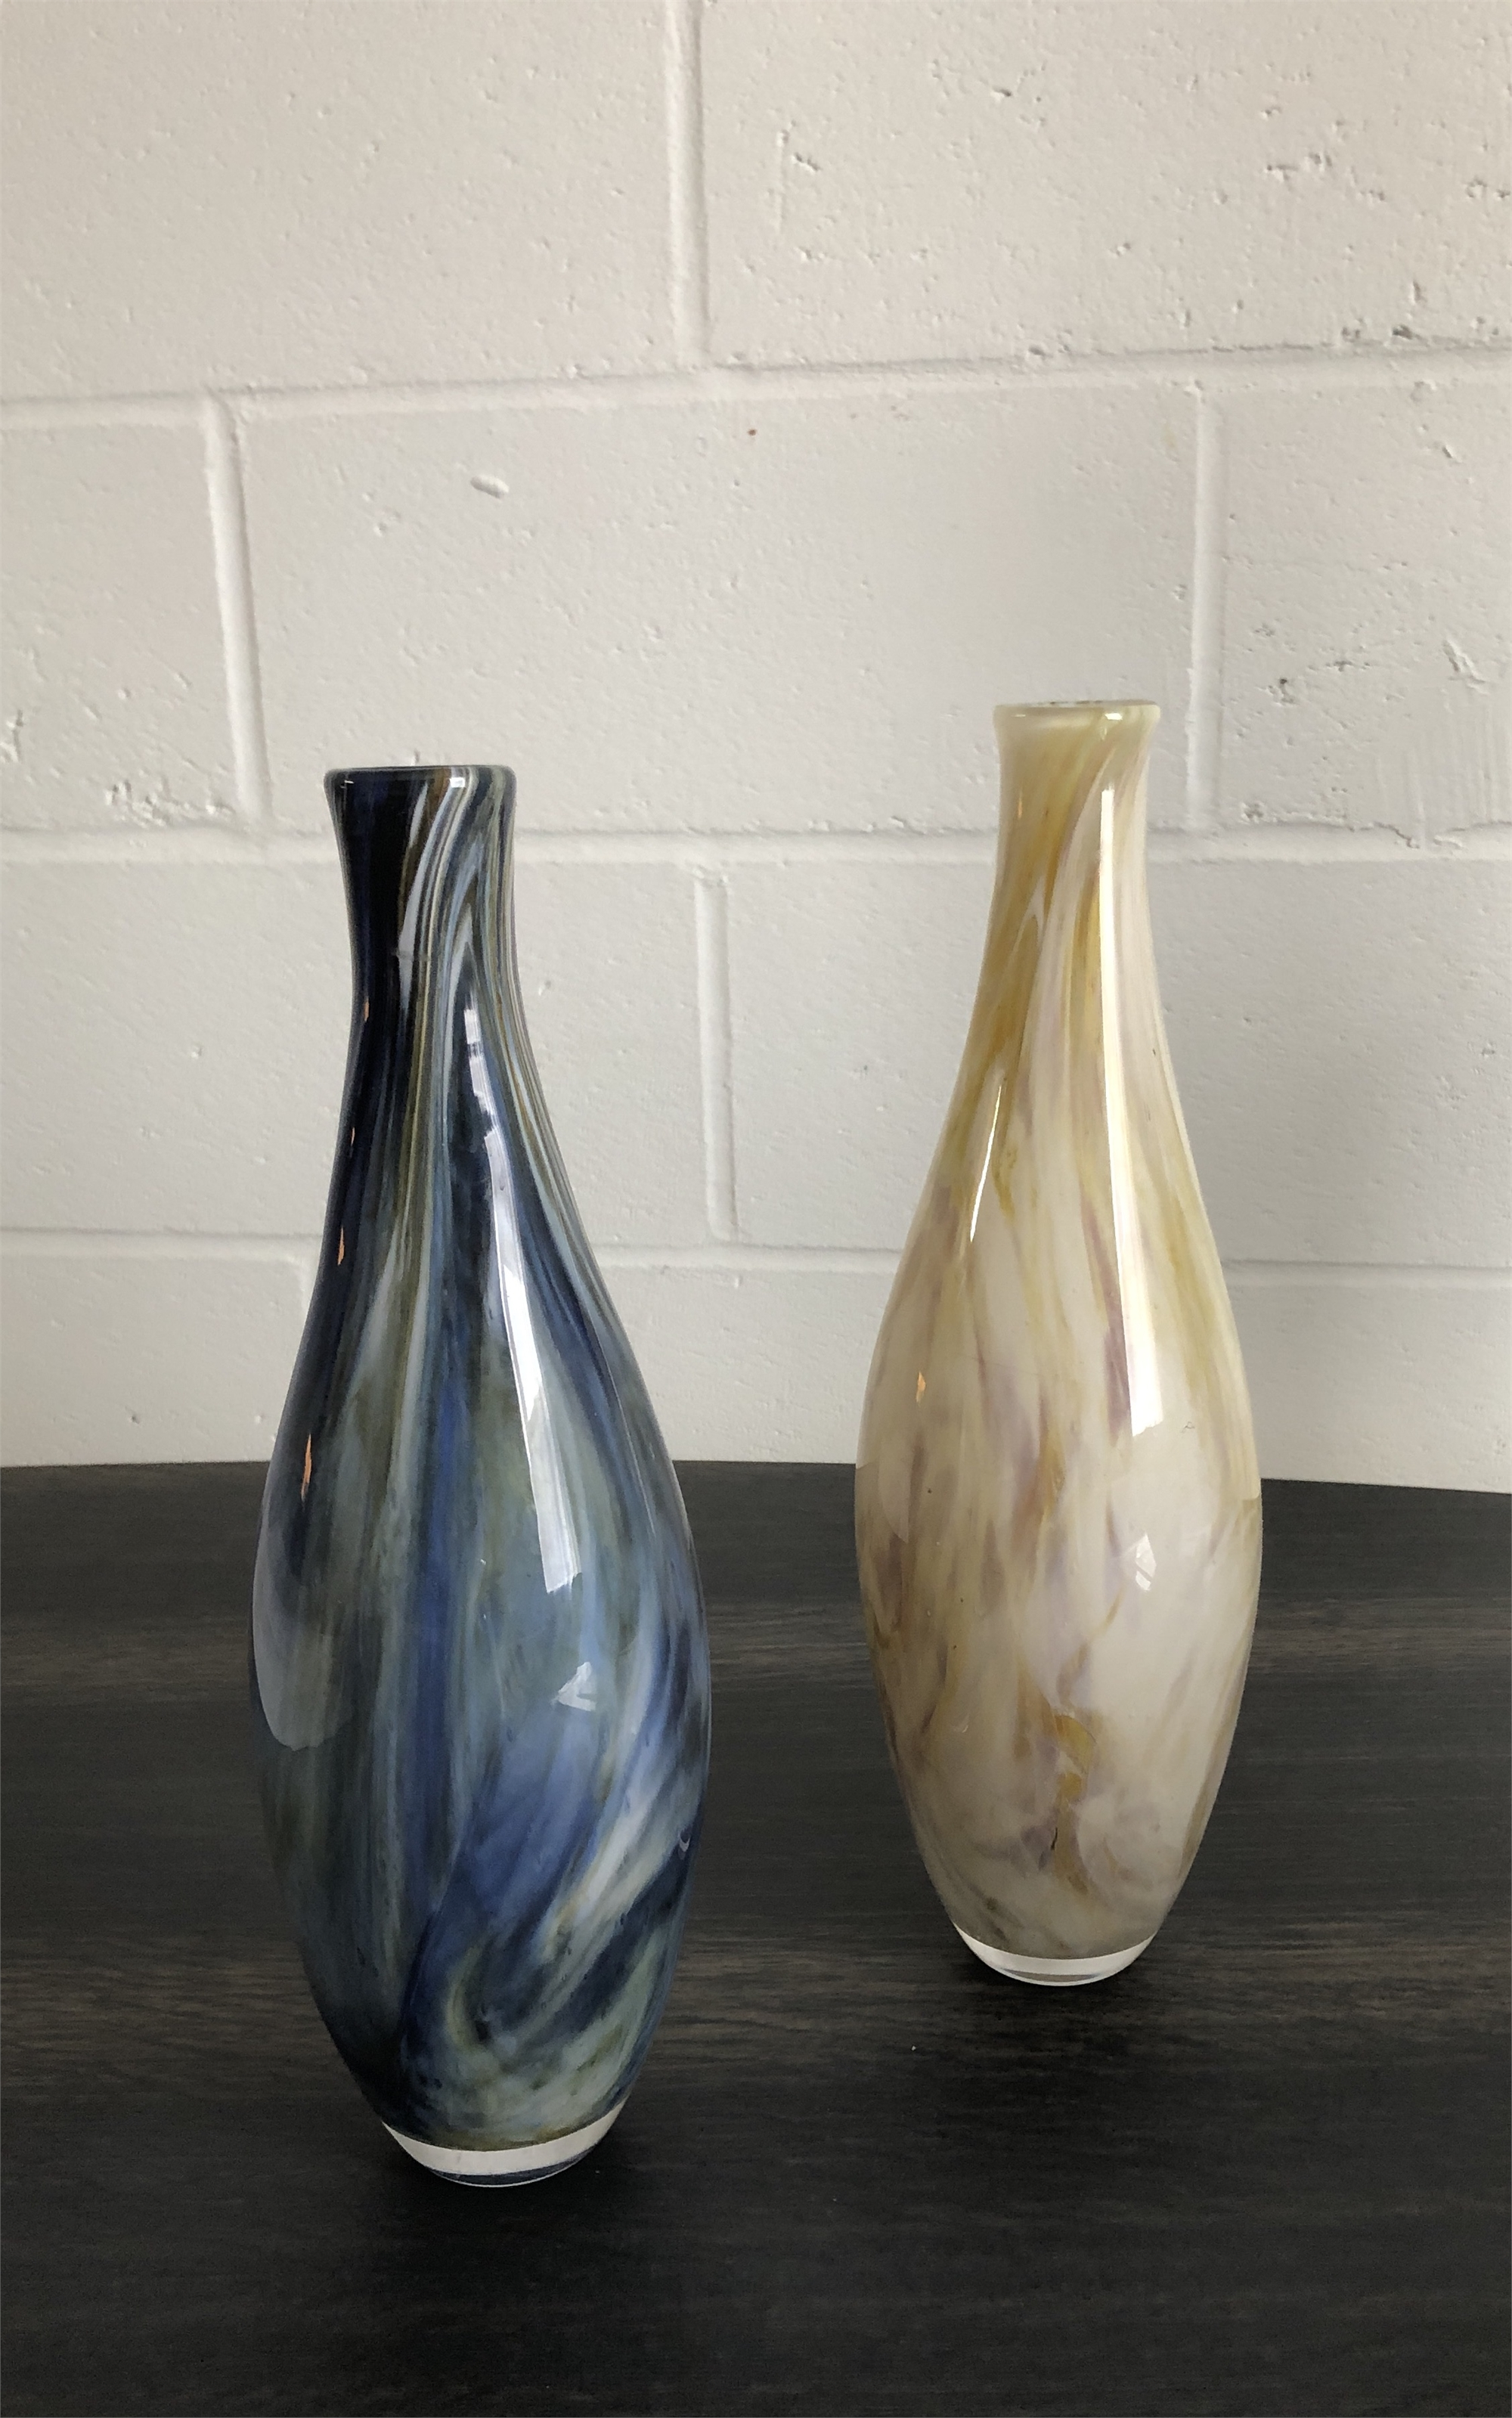 Two Bottles by Pascale Riberolles